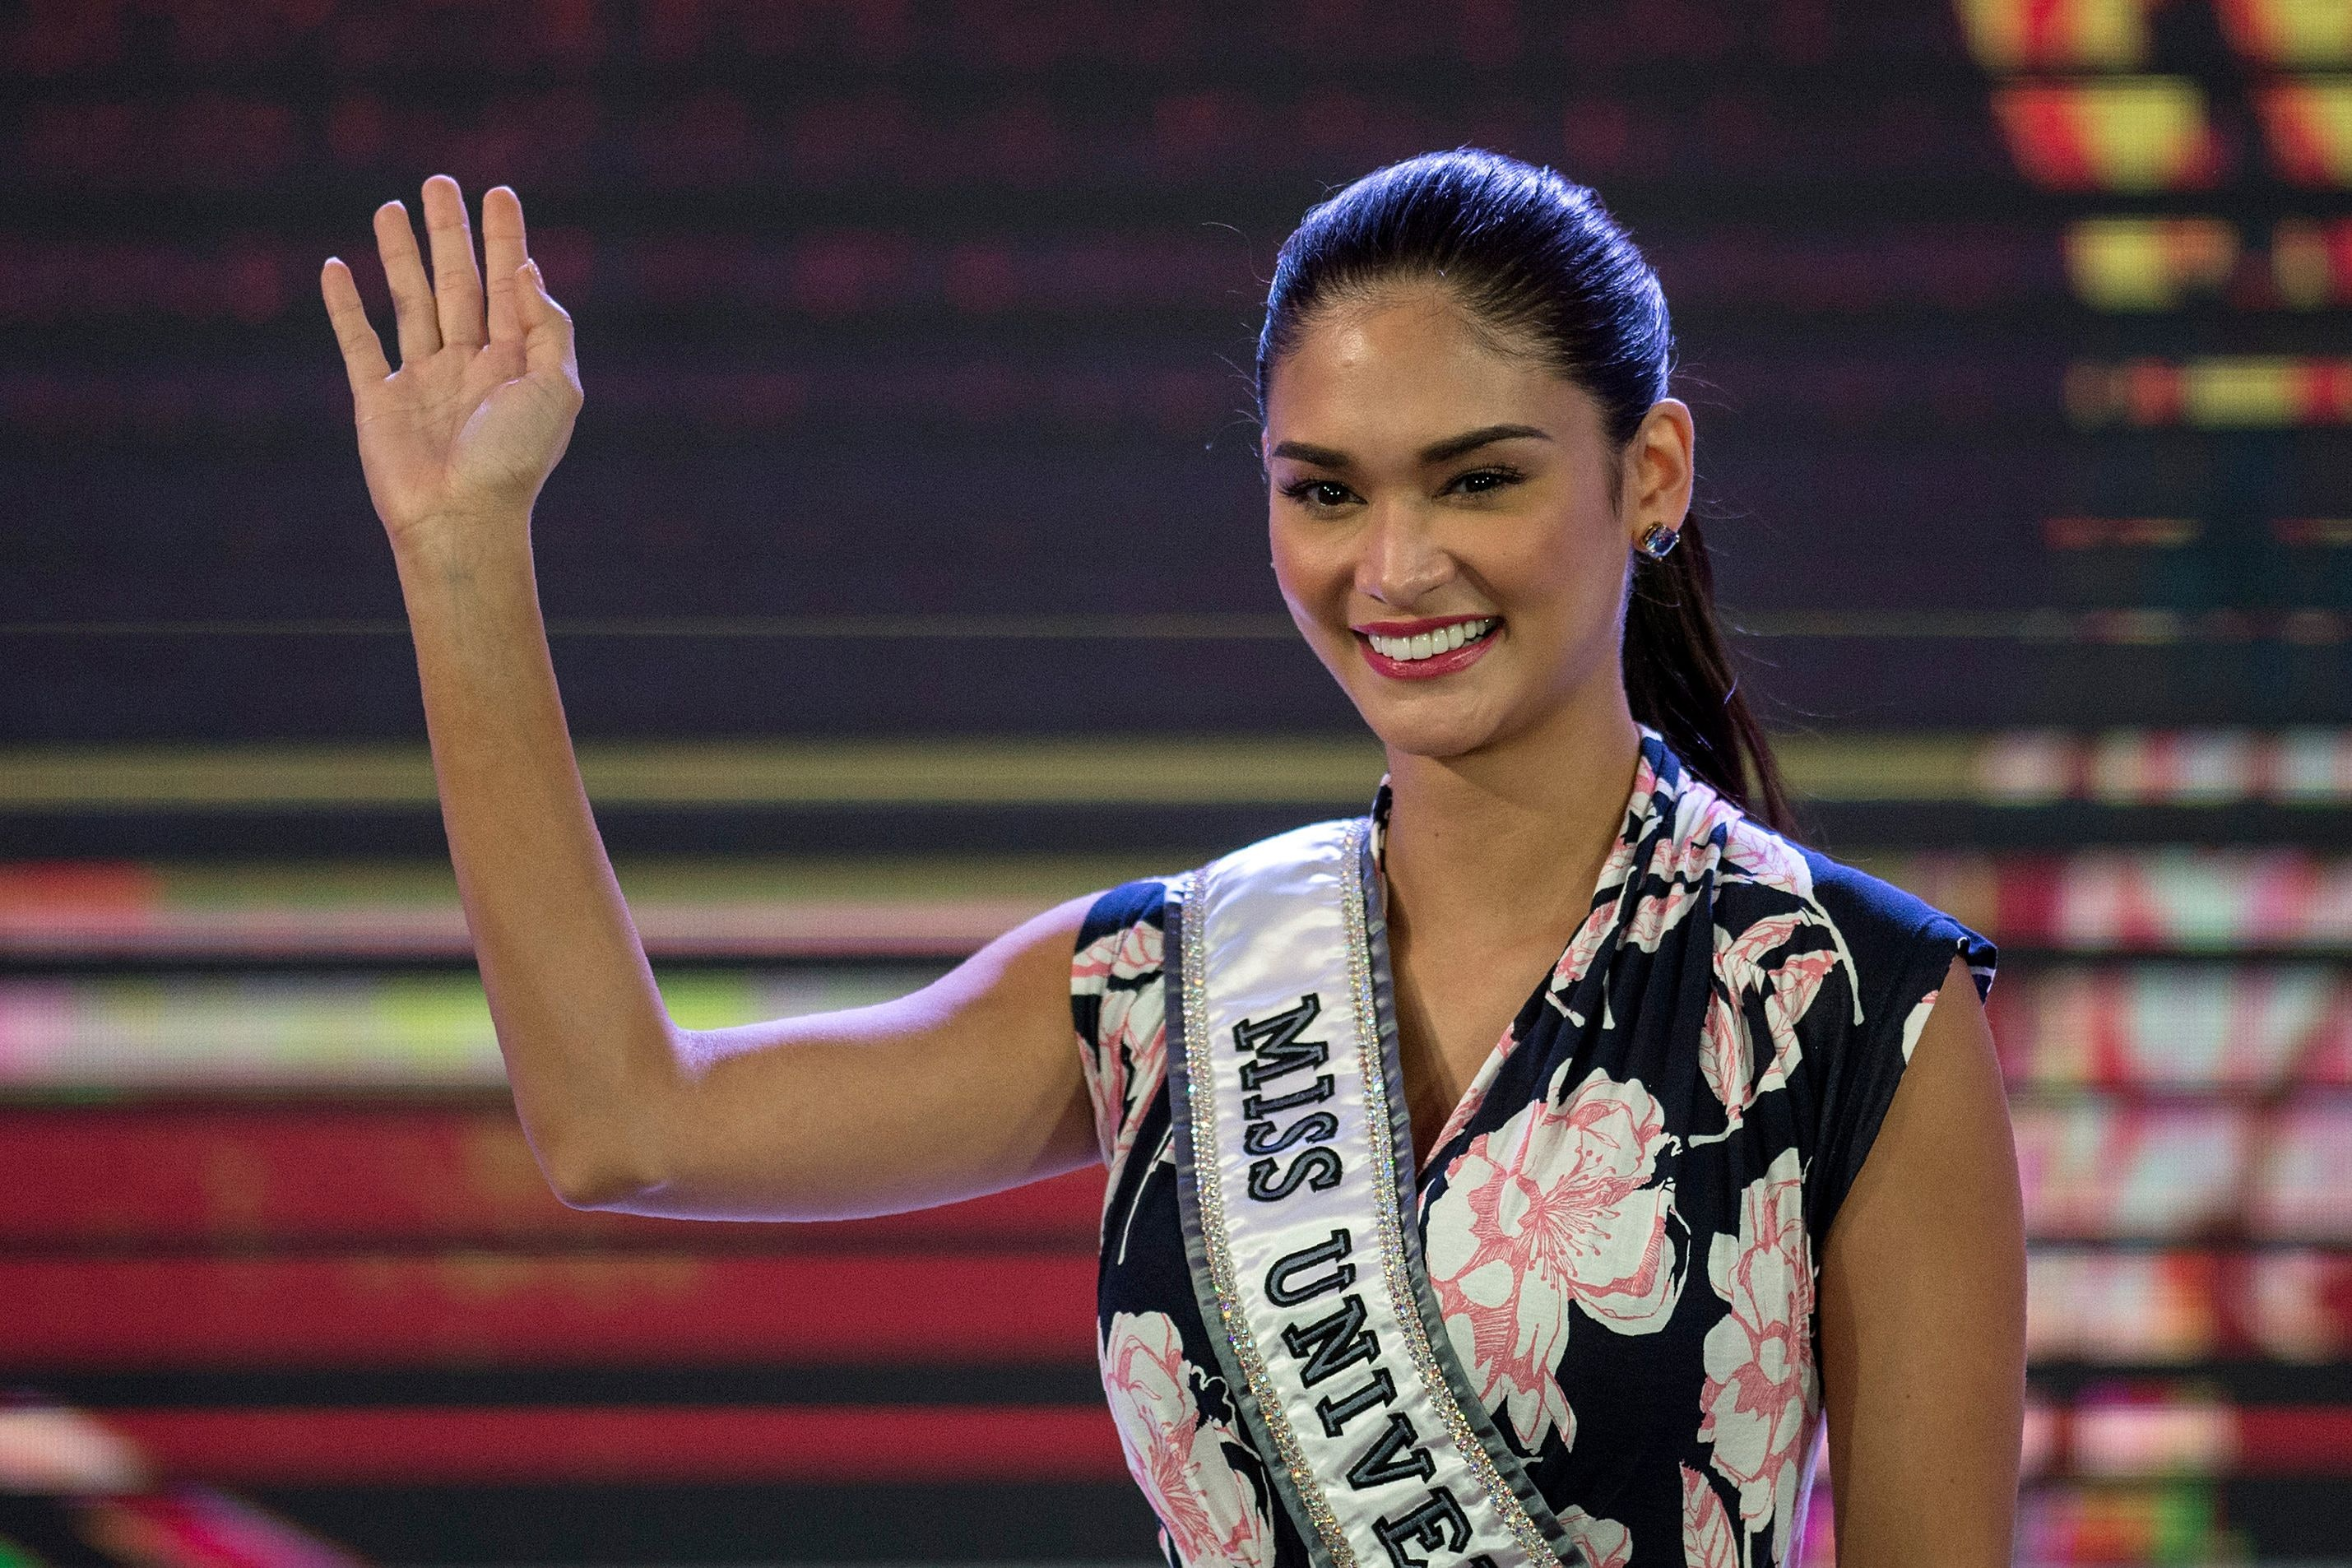 Miss France crowned as Miss Universe